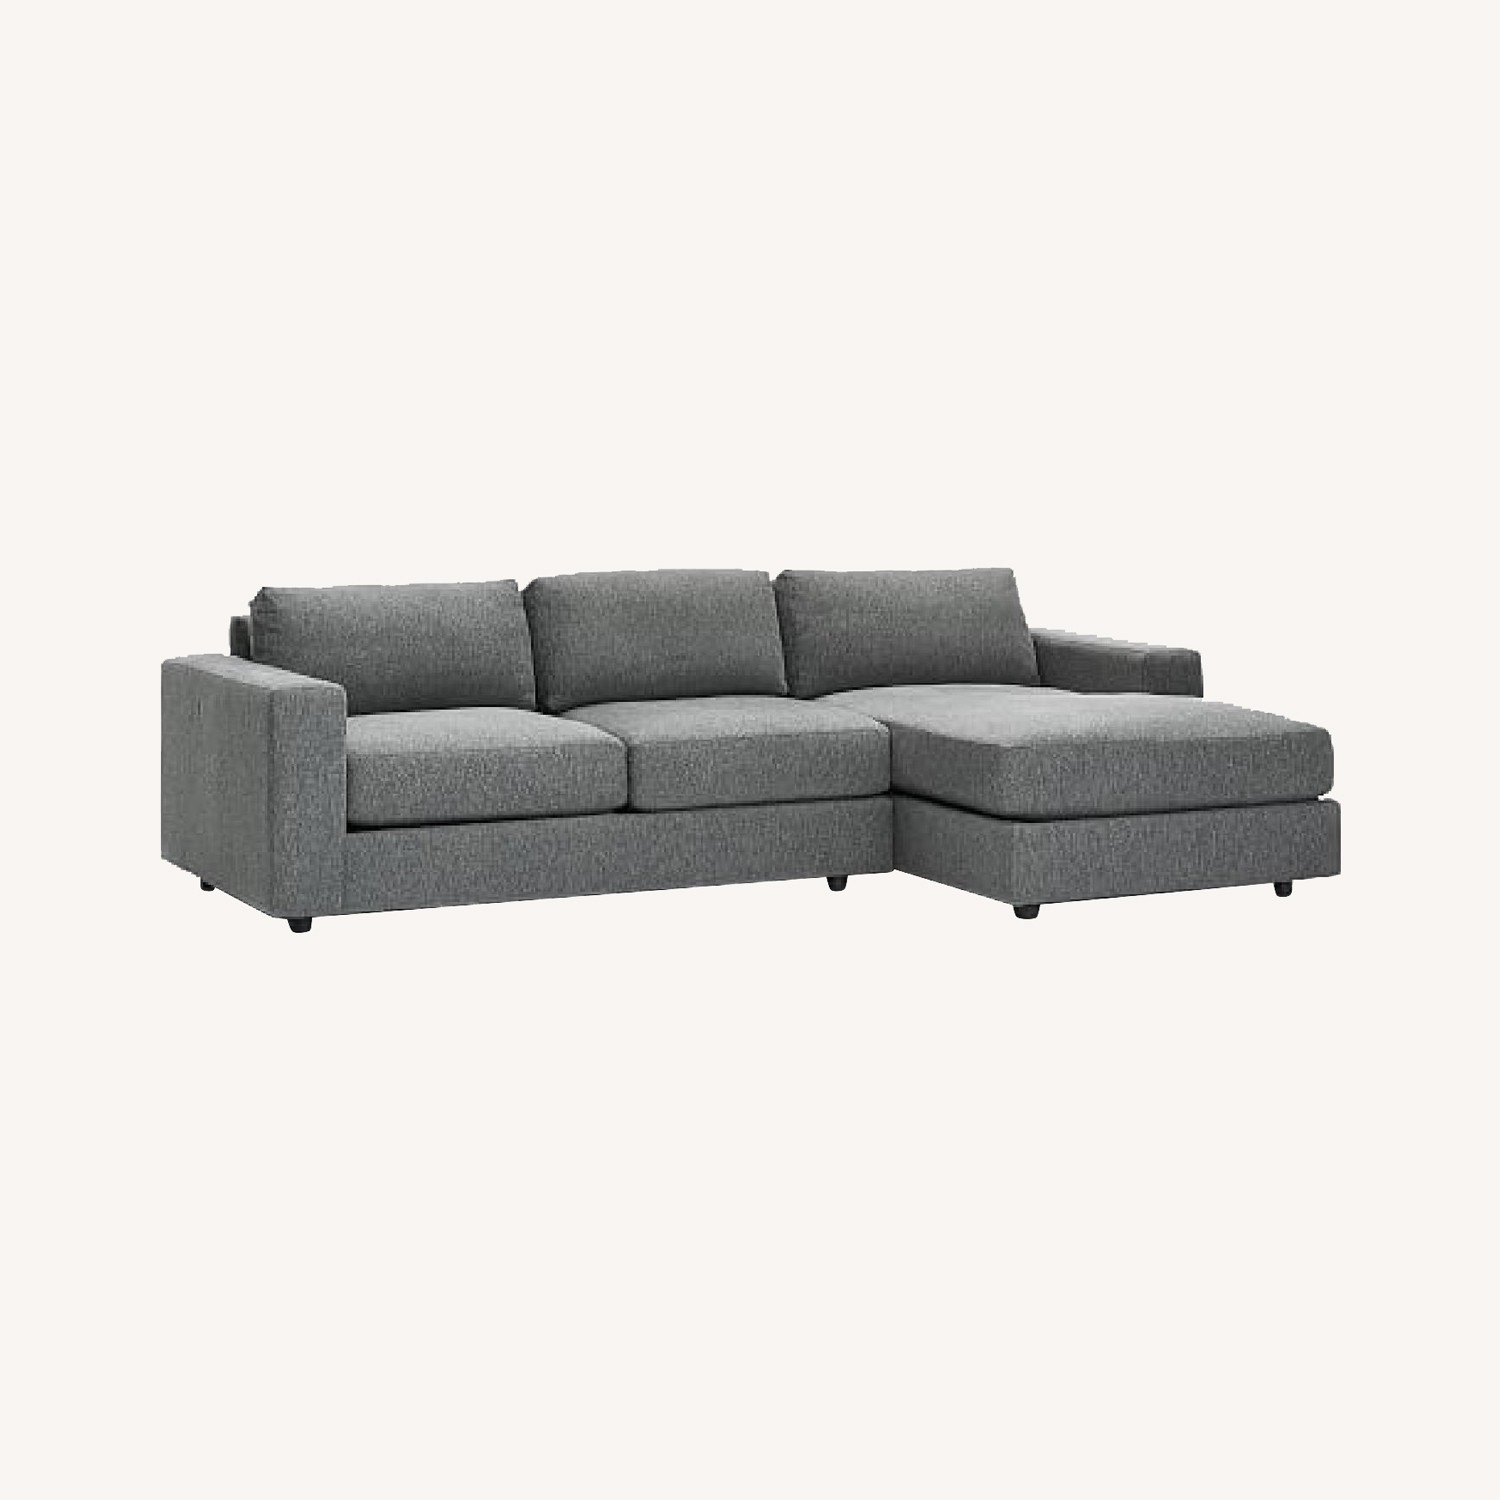 West Elm Urban Chaise Sectional - image-0